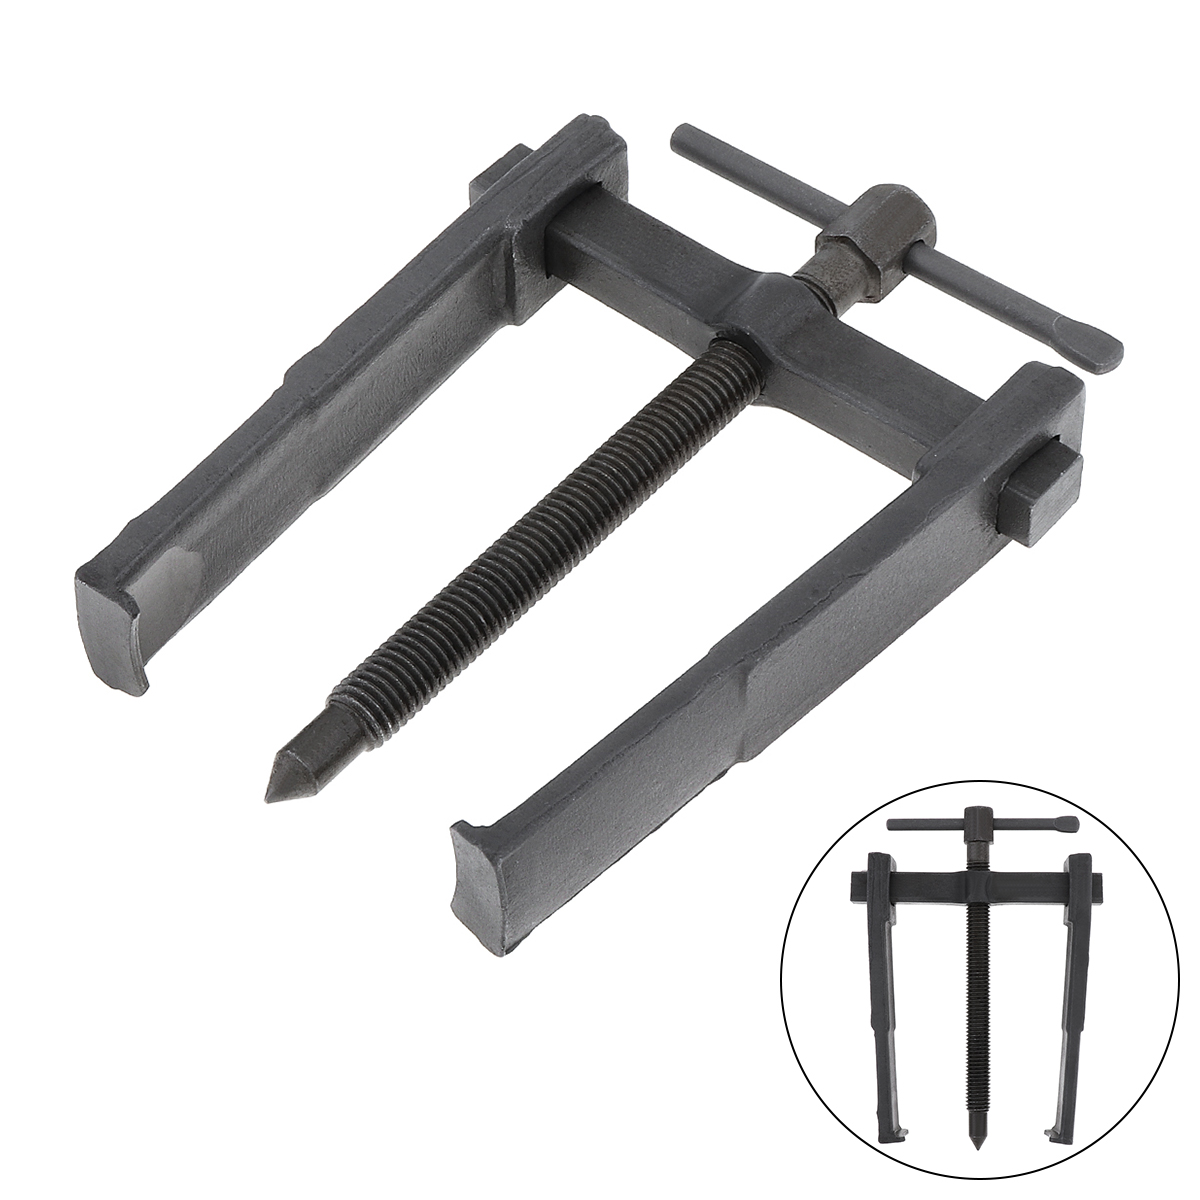 ChgImposs 8 Inch High-carbon Steel Two Claw Puller Separate Lifting Device Pull Strengthen Bearing Rama Removing Kit with Screw Rod for Auto Mechanic Maintenance